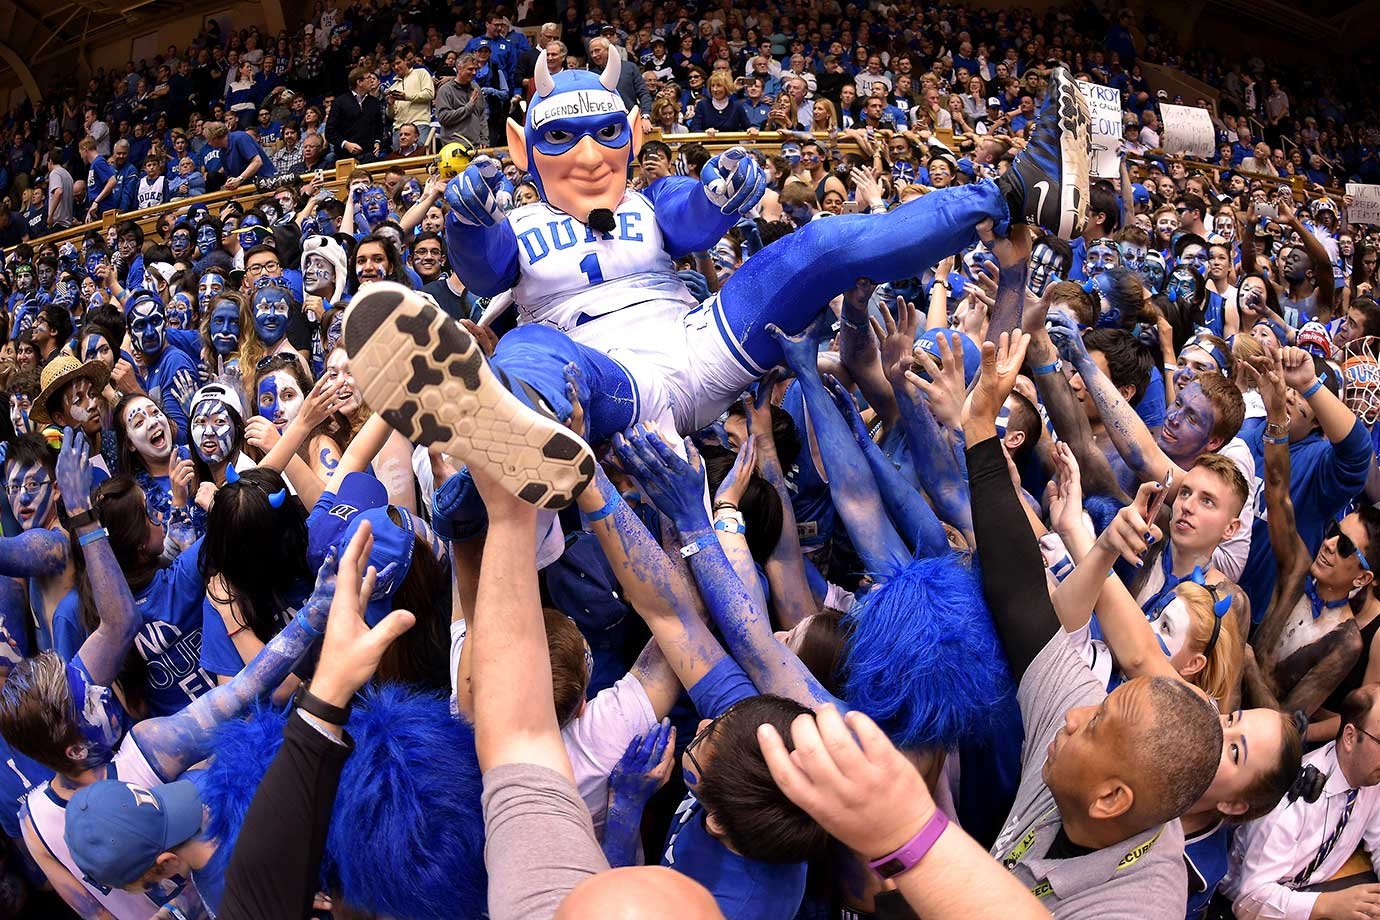 The mascot of Duke crowd surfs over the Cameron Crazies prior to their game against North Carolina.